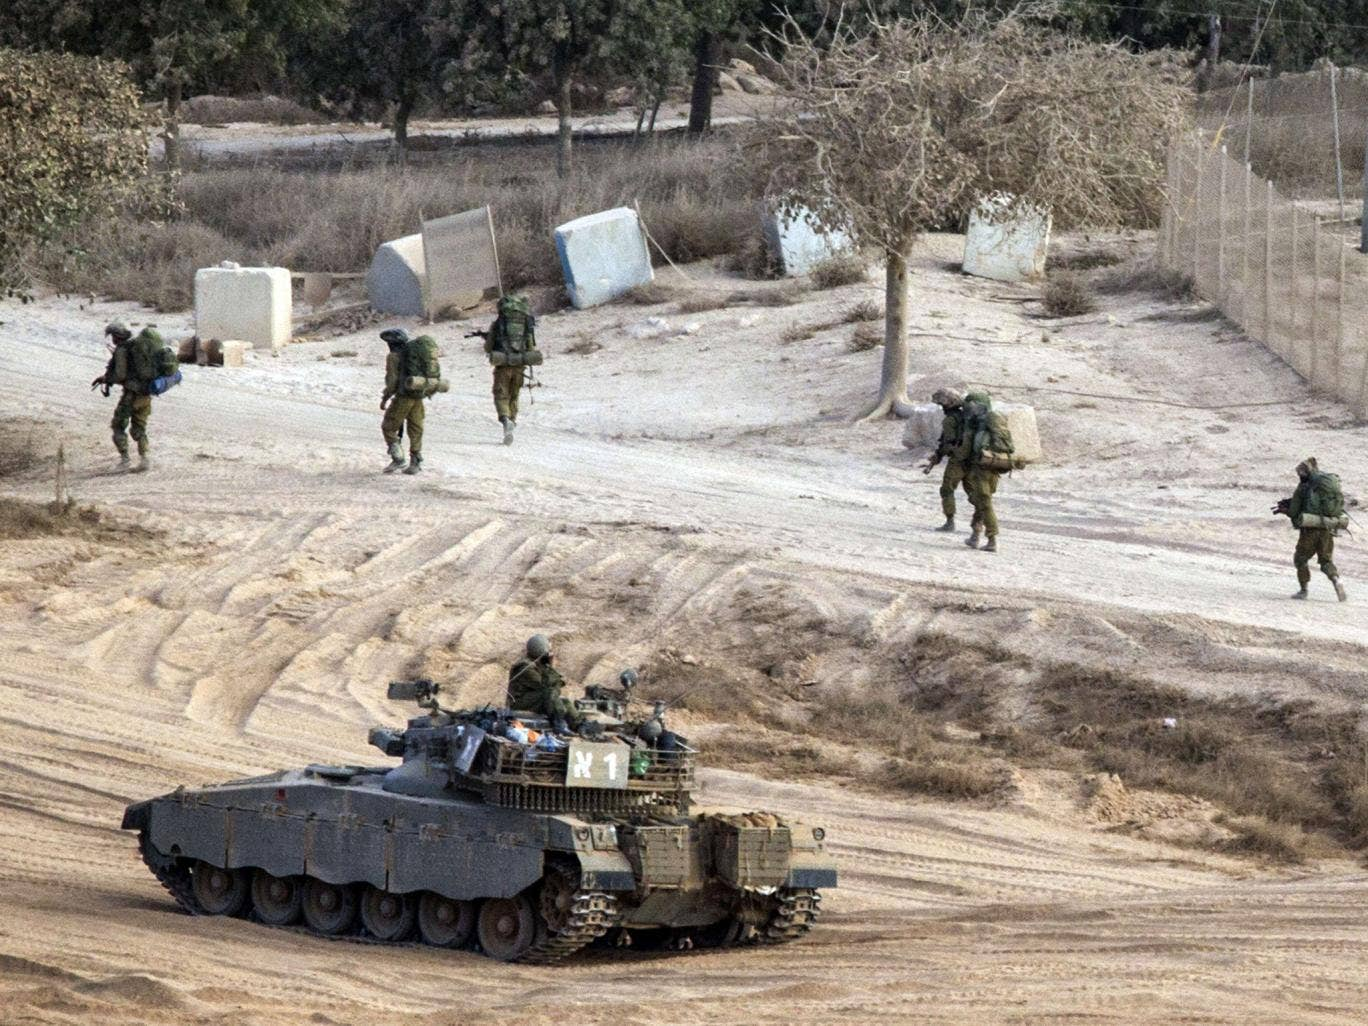 Israeli soldiers walk along Israel's border with the Gaza Strip, on August 4, 2014